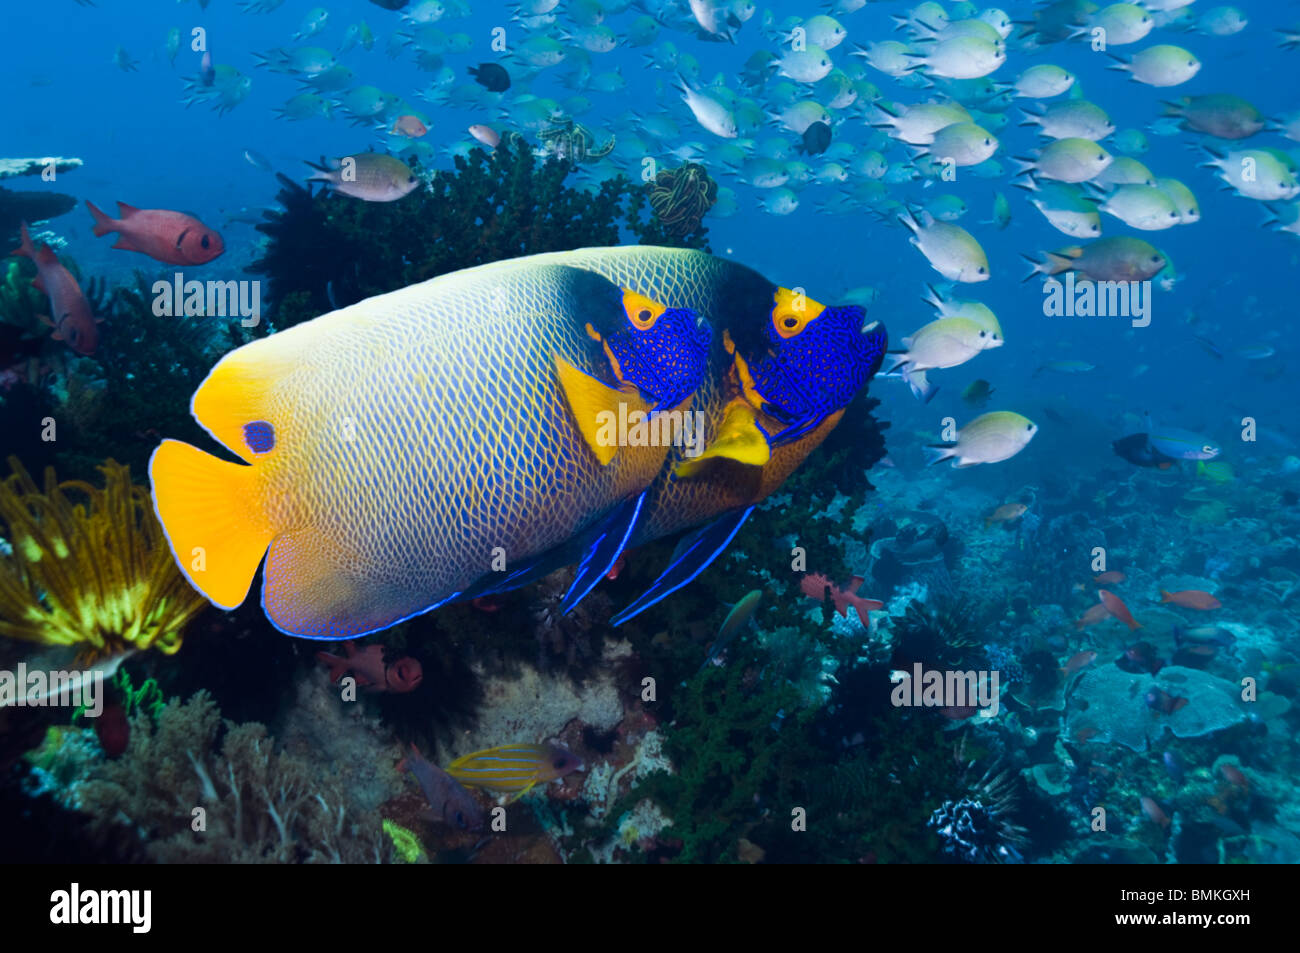 colourful fish stockfotos colourful fish bilder alamy. Black Bedroom Furniture Sets. Home Design Ideas